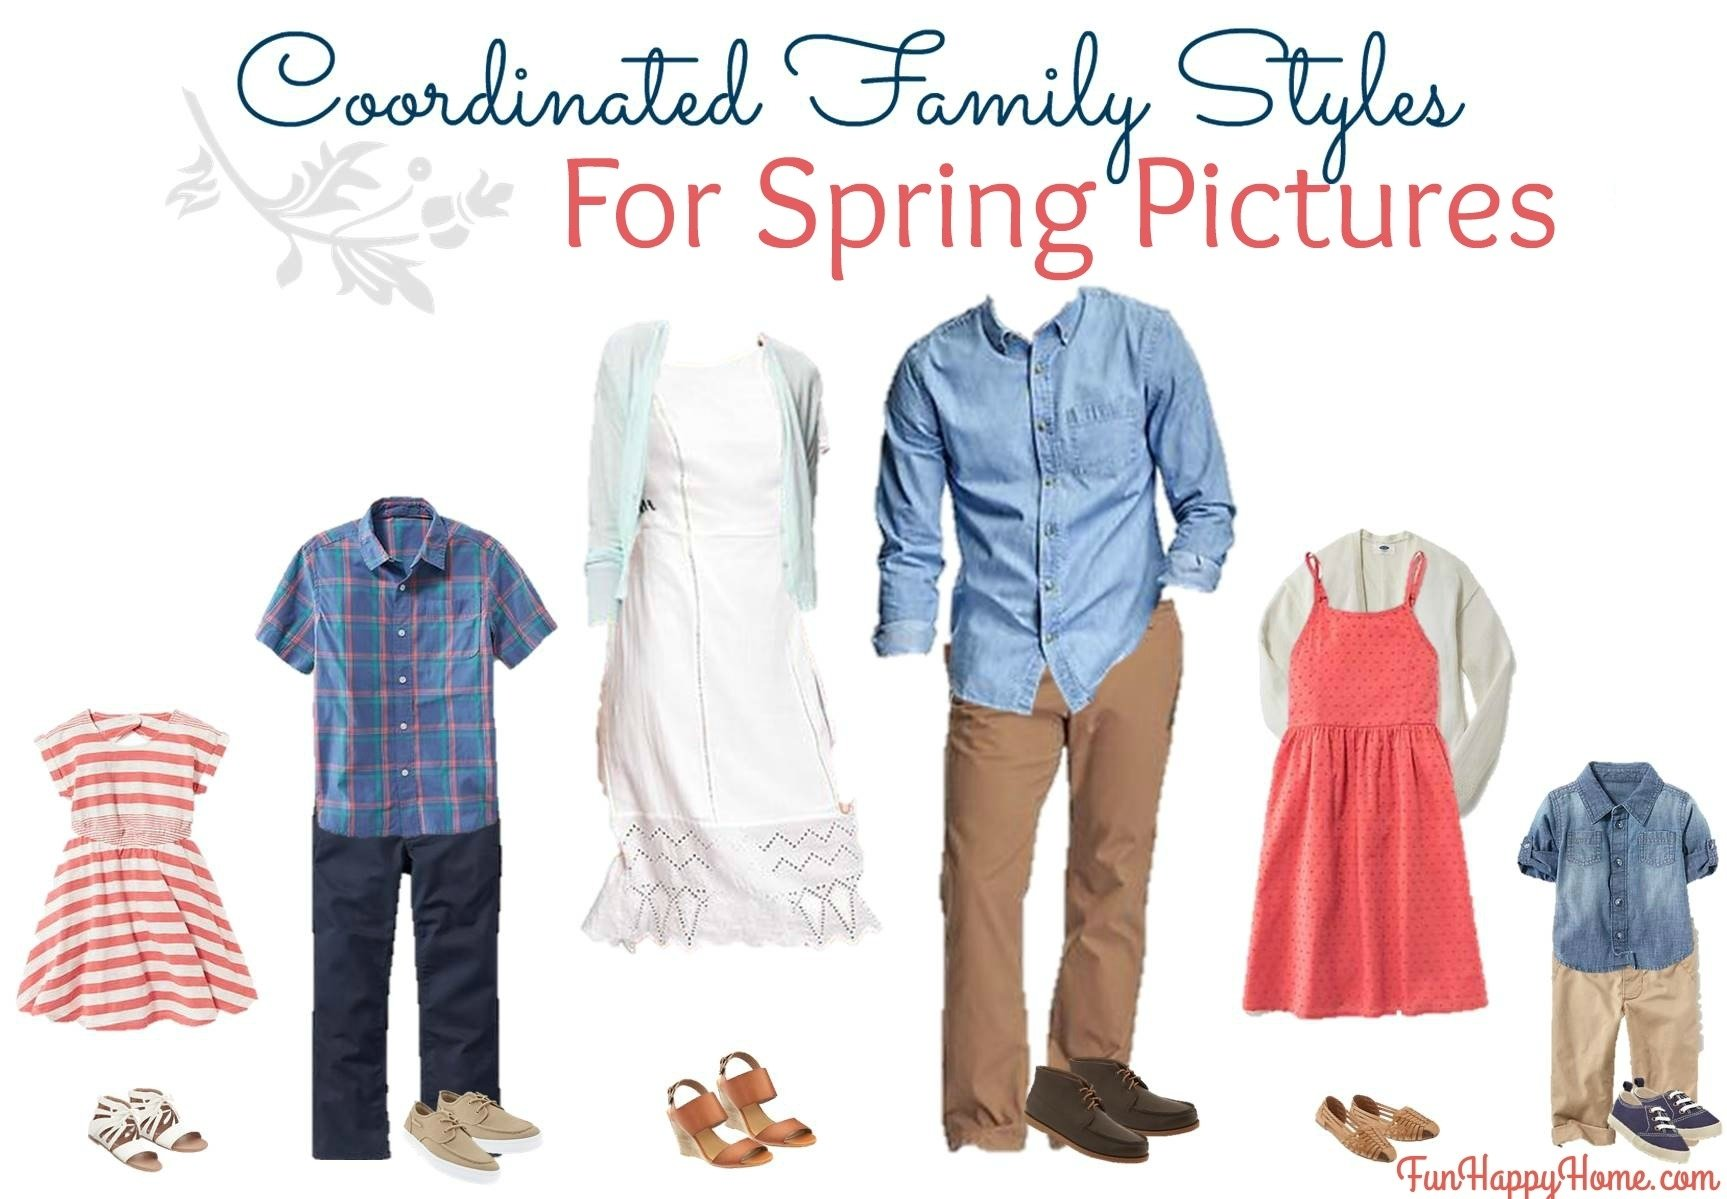 10 Wonderful Spring Family Picture Outfit Ideas Coordinated Styles For Pictures Fun Happy Home